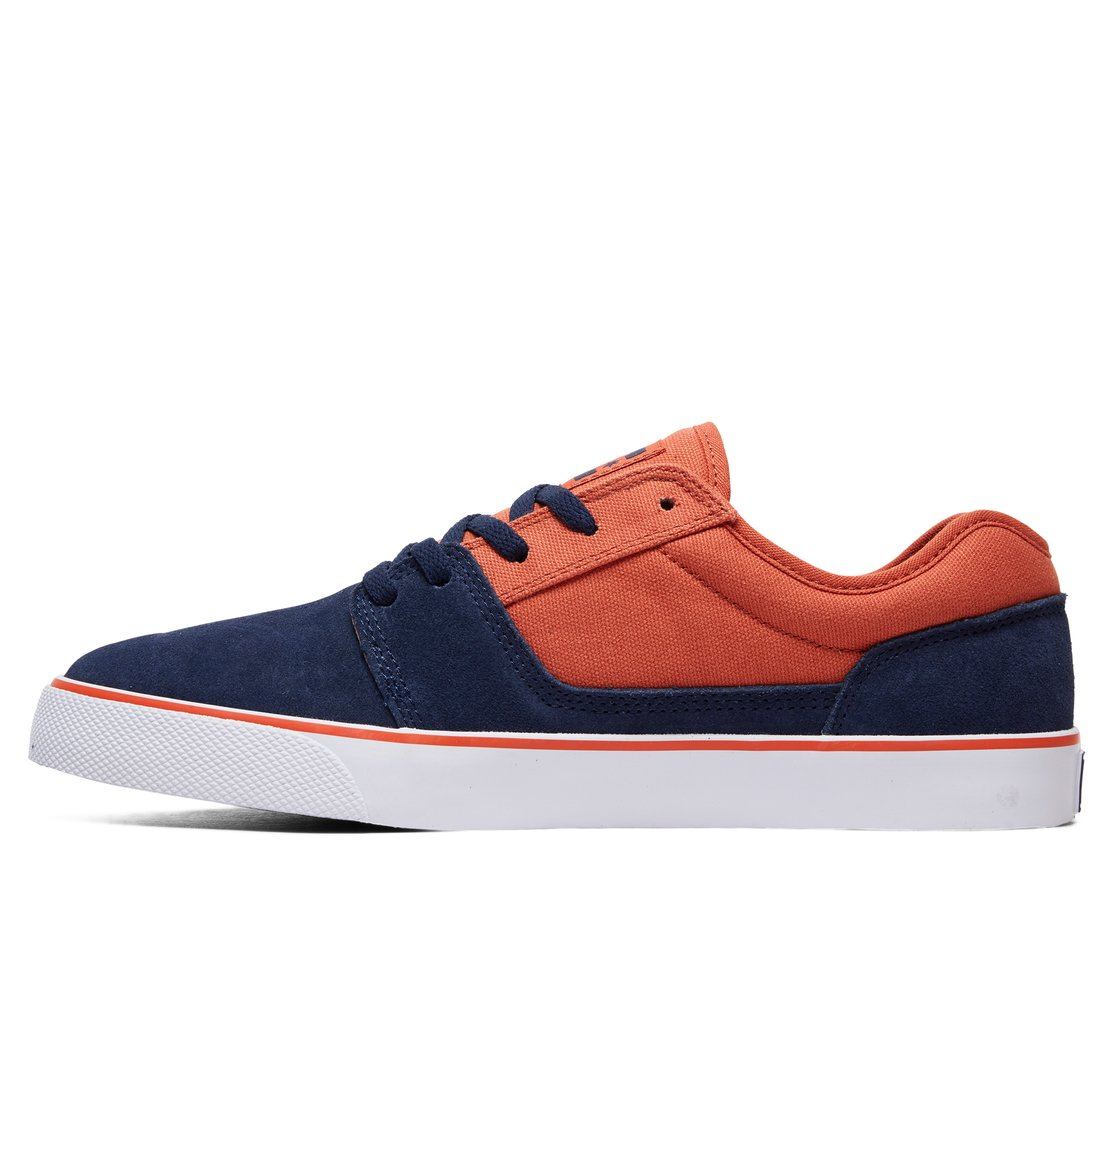 DC-Shoes-Tonik-Baskets-pour-Homme-302905 miniature 39